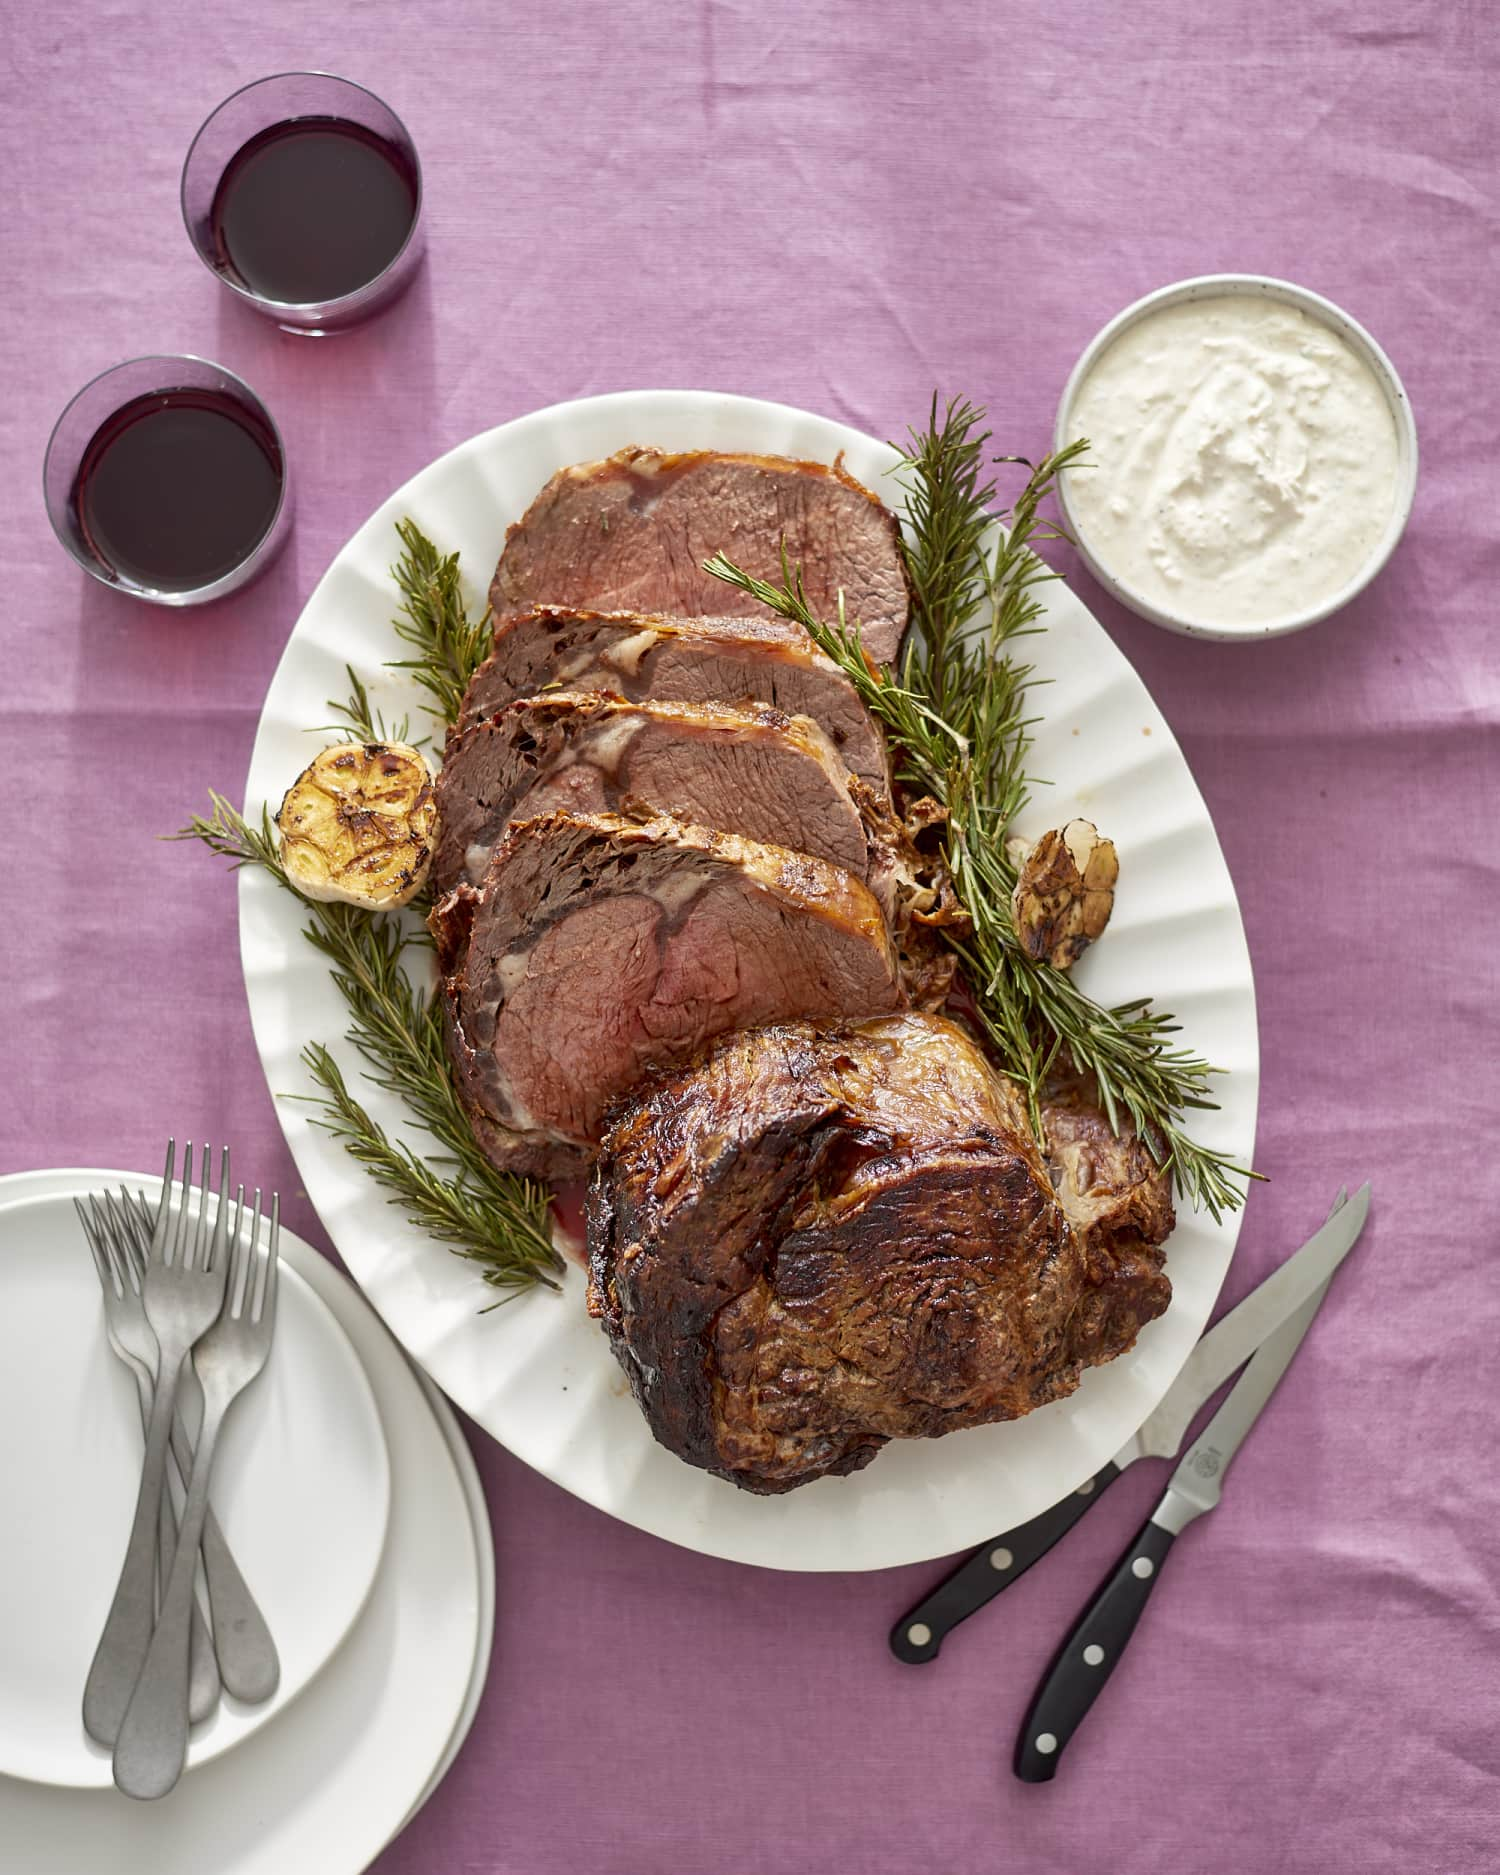 How To Make Classic Prime Rib: The Simplest, Easiest Method | Kitchn